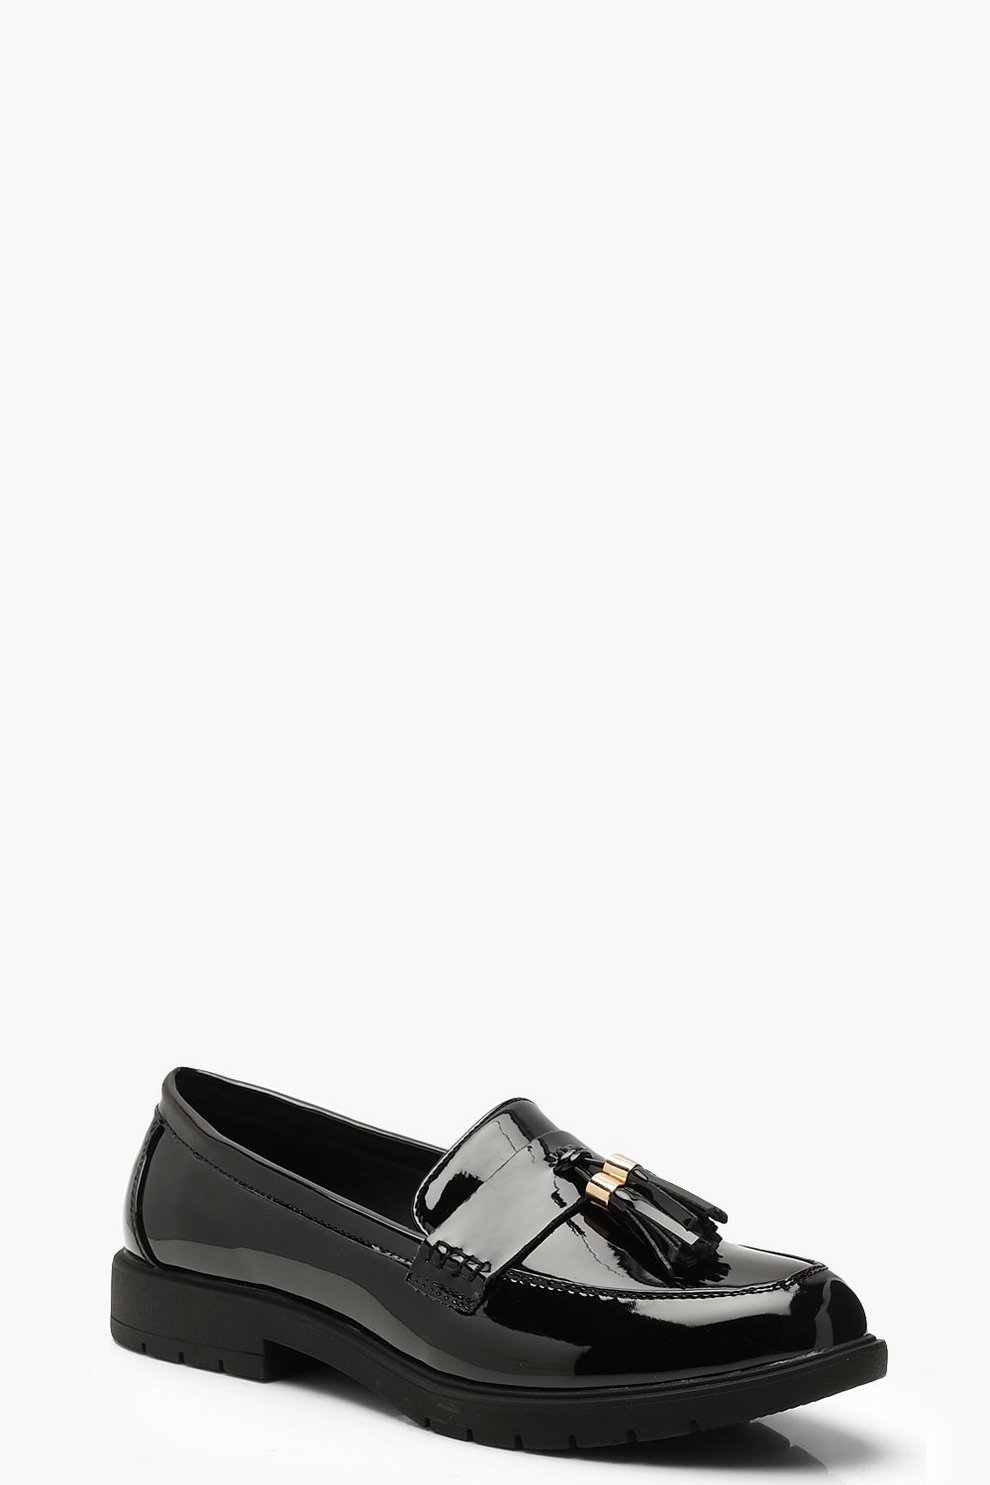 f2630bb0134 Tassel Trim Cleated Loafers